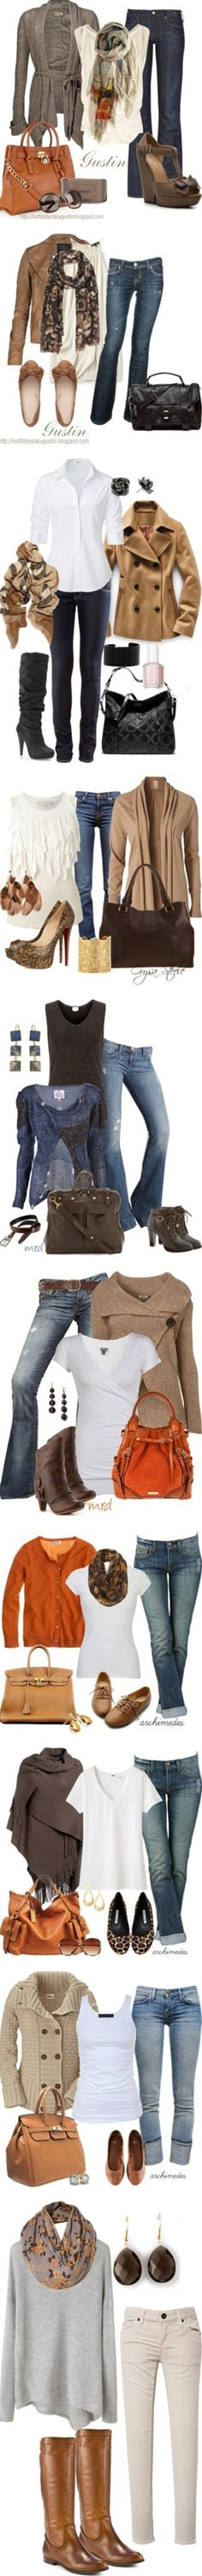 I already own the sweater just need to find this purse, fall clothes always look nice on a woman. I can hide my jiggle arms ha